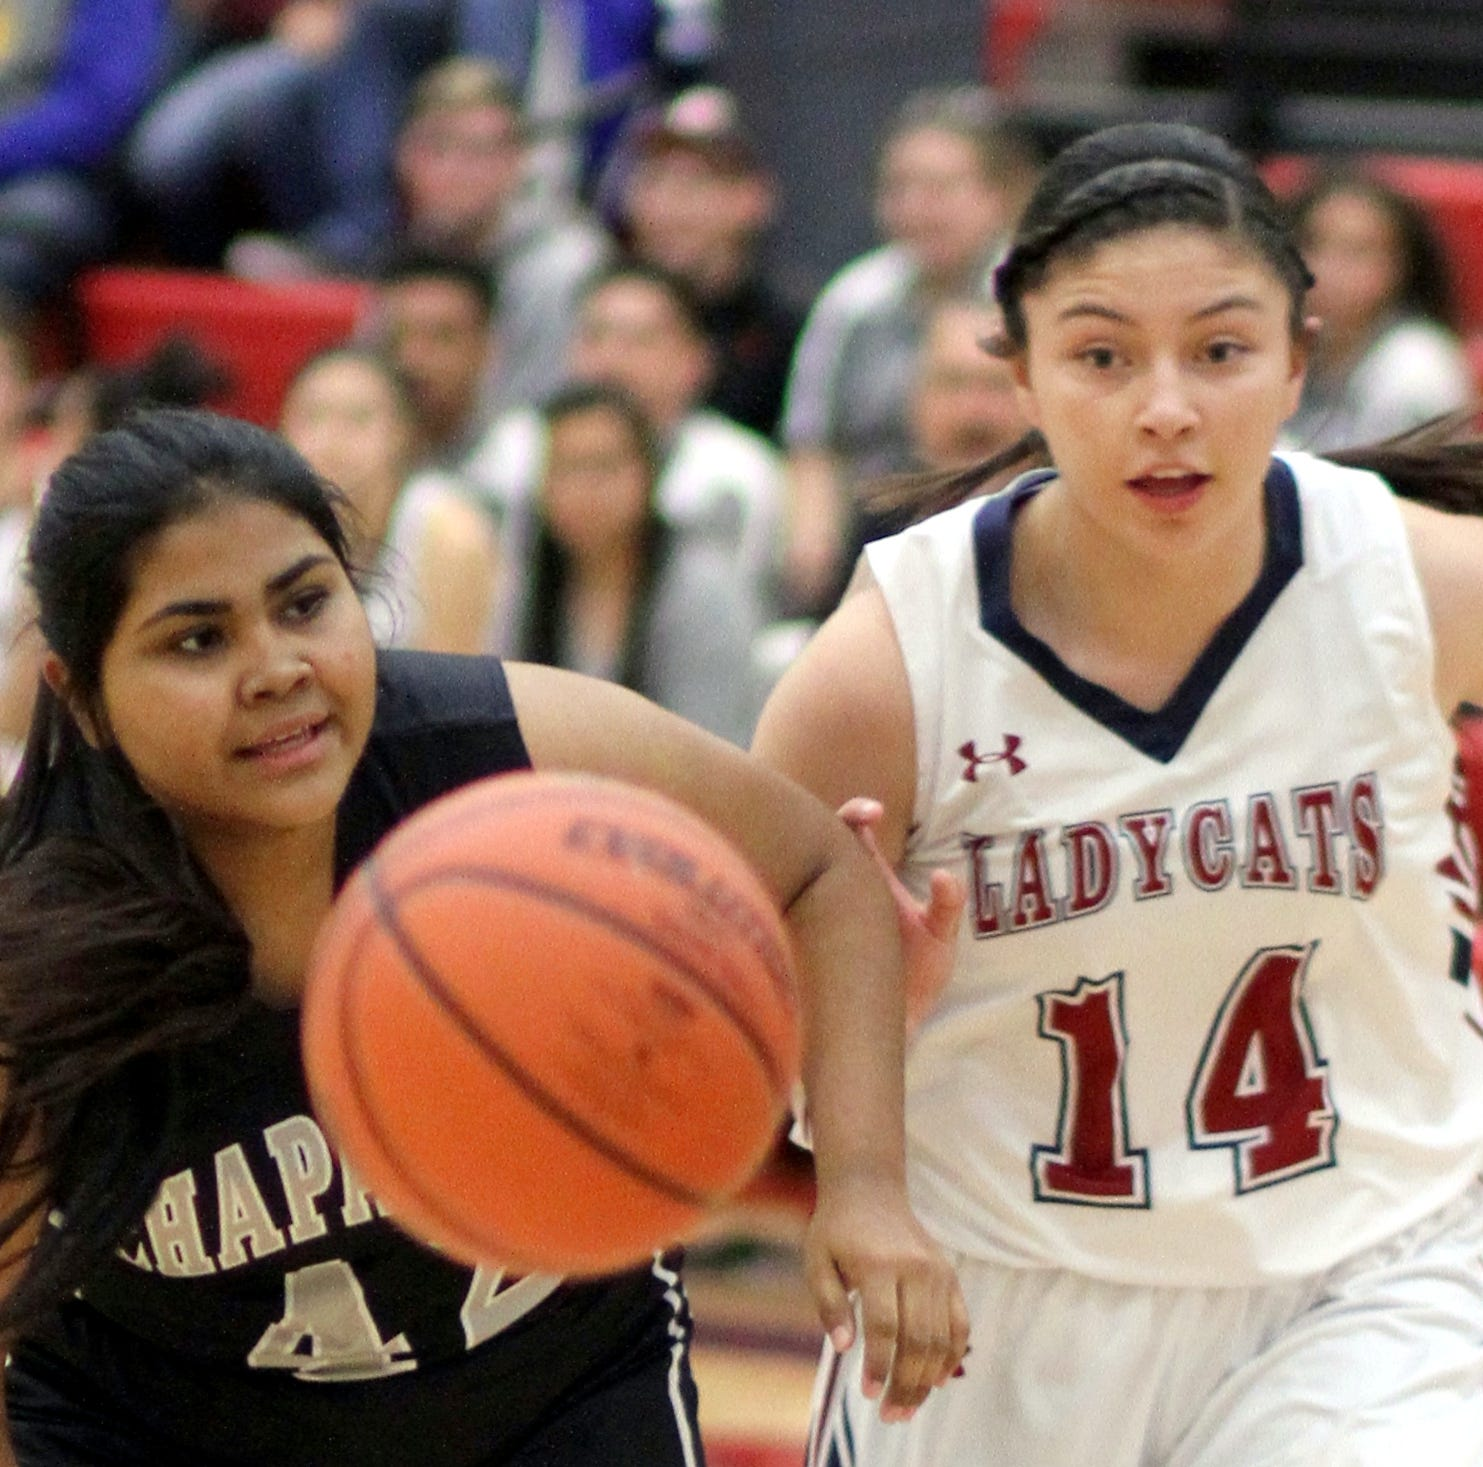 Deming High Lady Wildcats basketball looks to end two-game skid at Las Cruces High